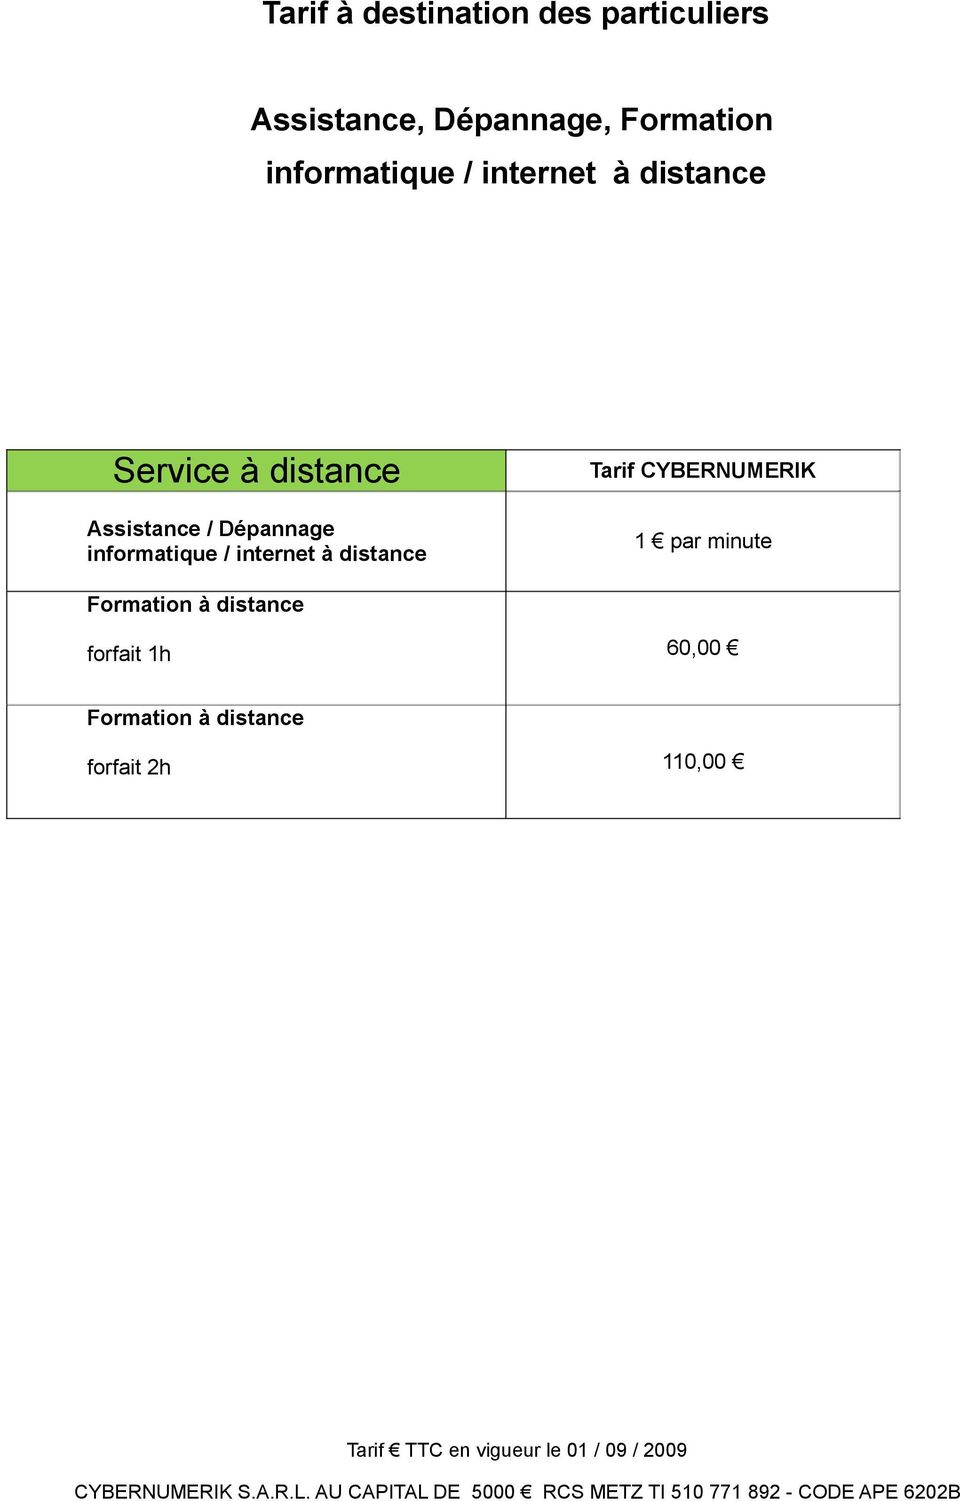 Assistance / Dépannage informatique / internet à distance 1 par